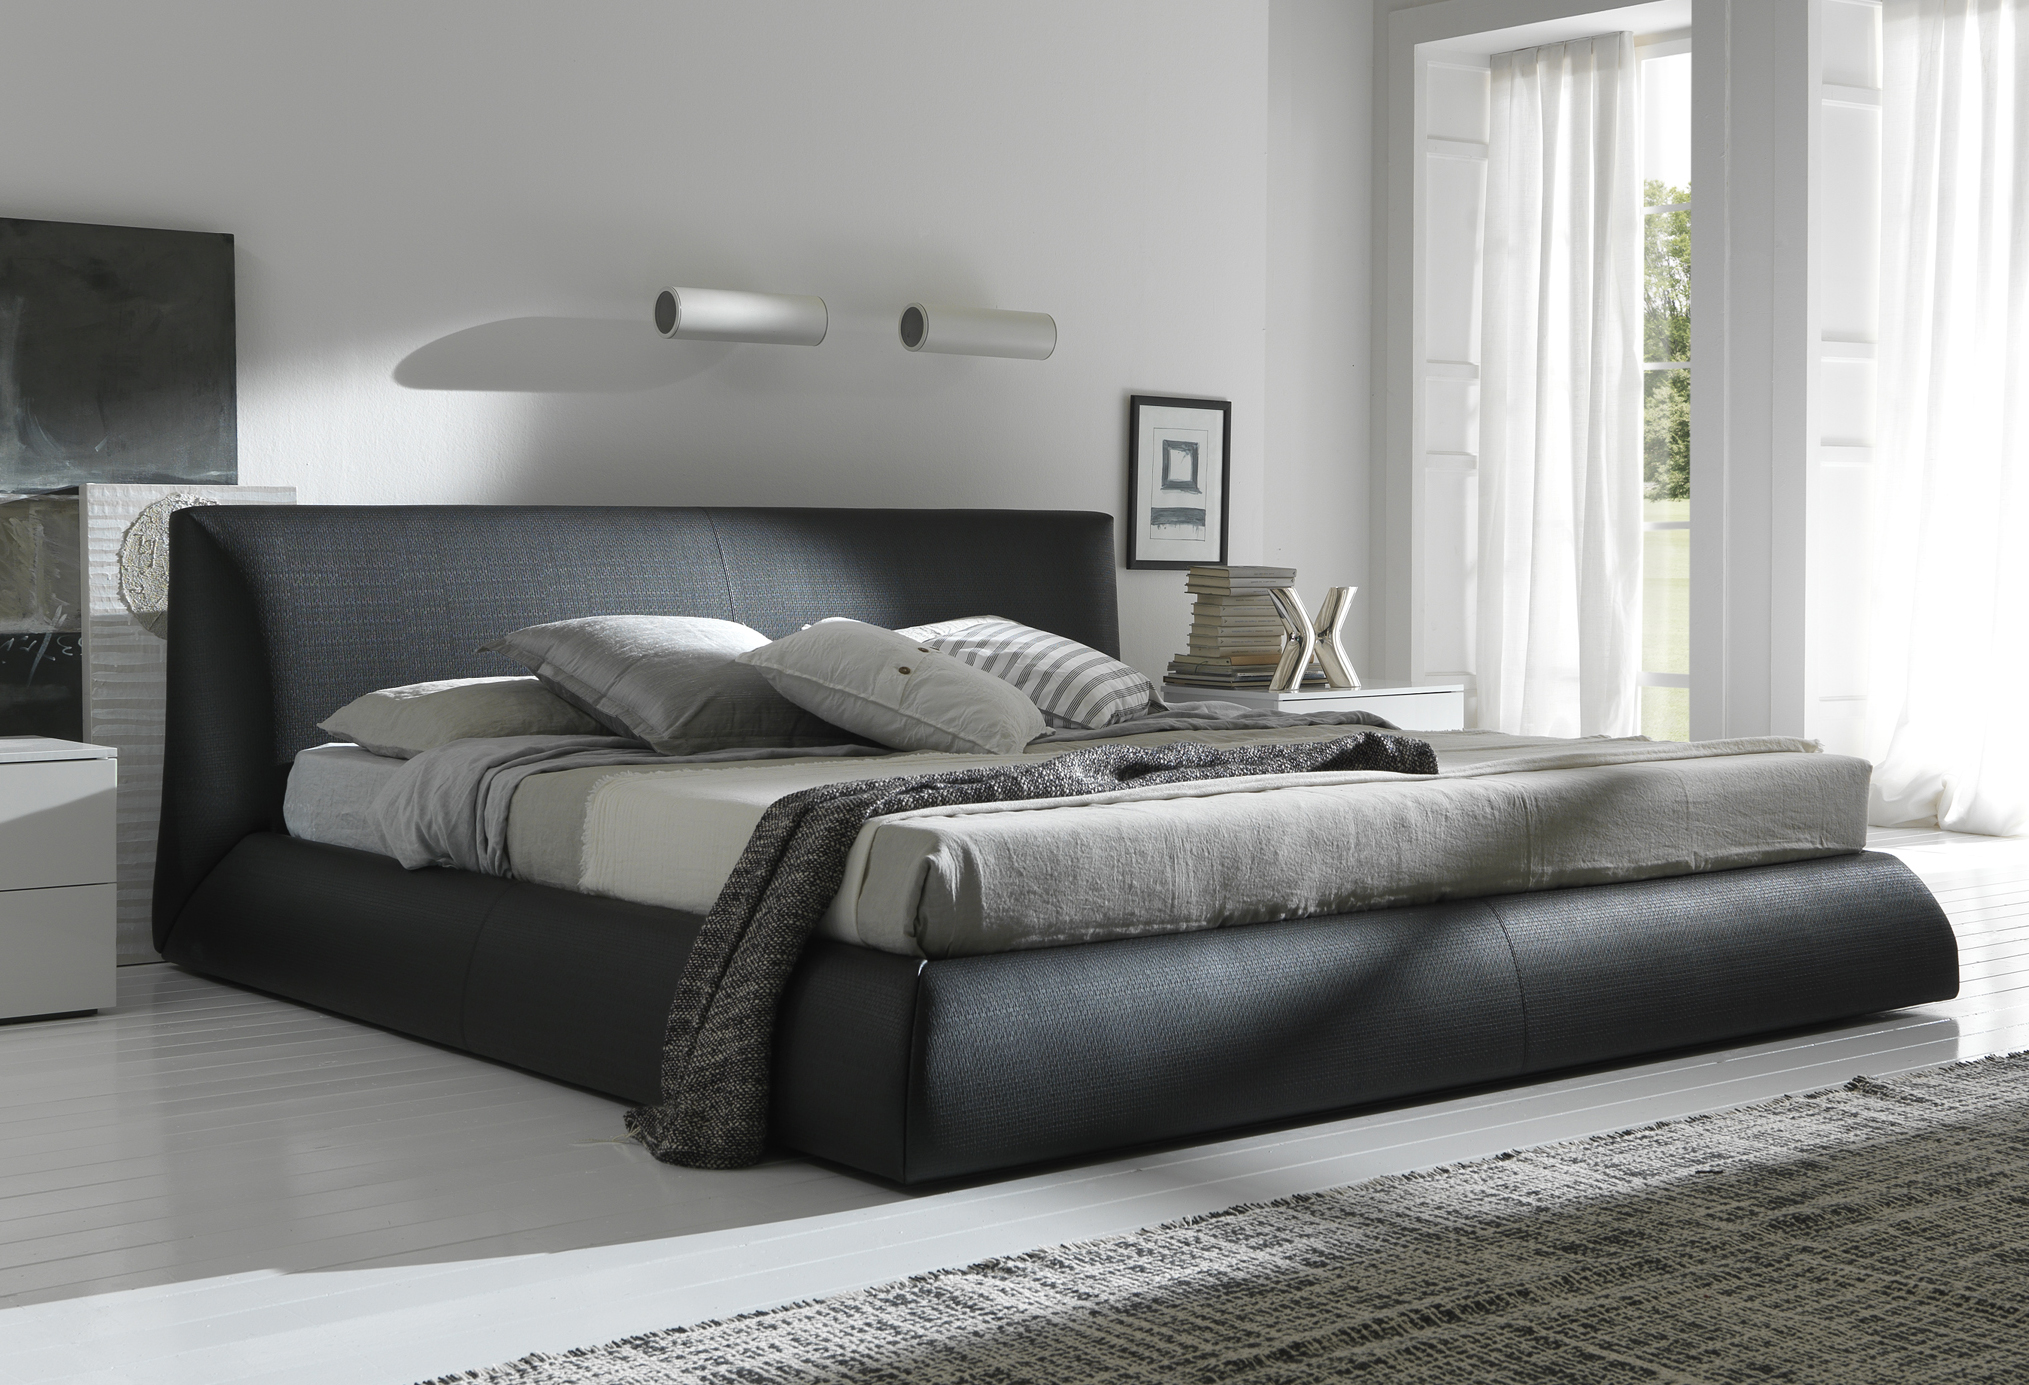 Stylish black king size bed frame bedroom futuristic decorating king size beds for sale ewuodhj